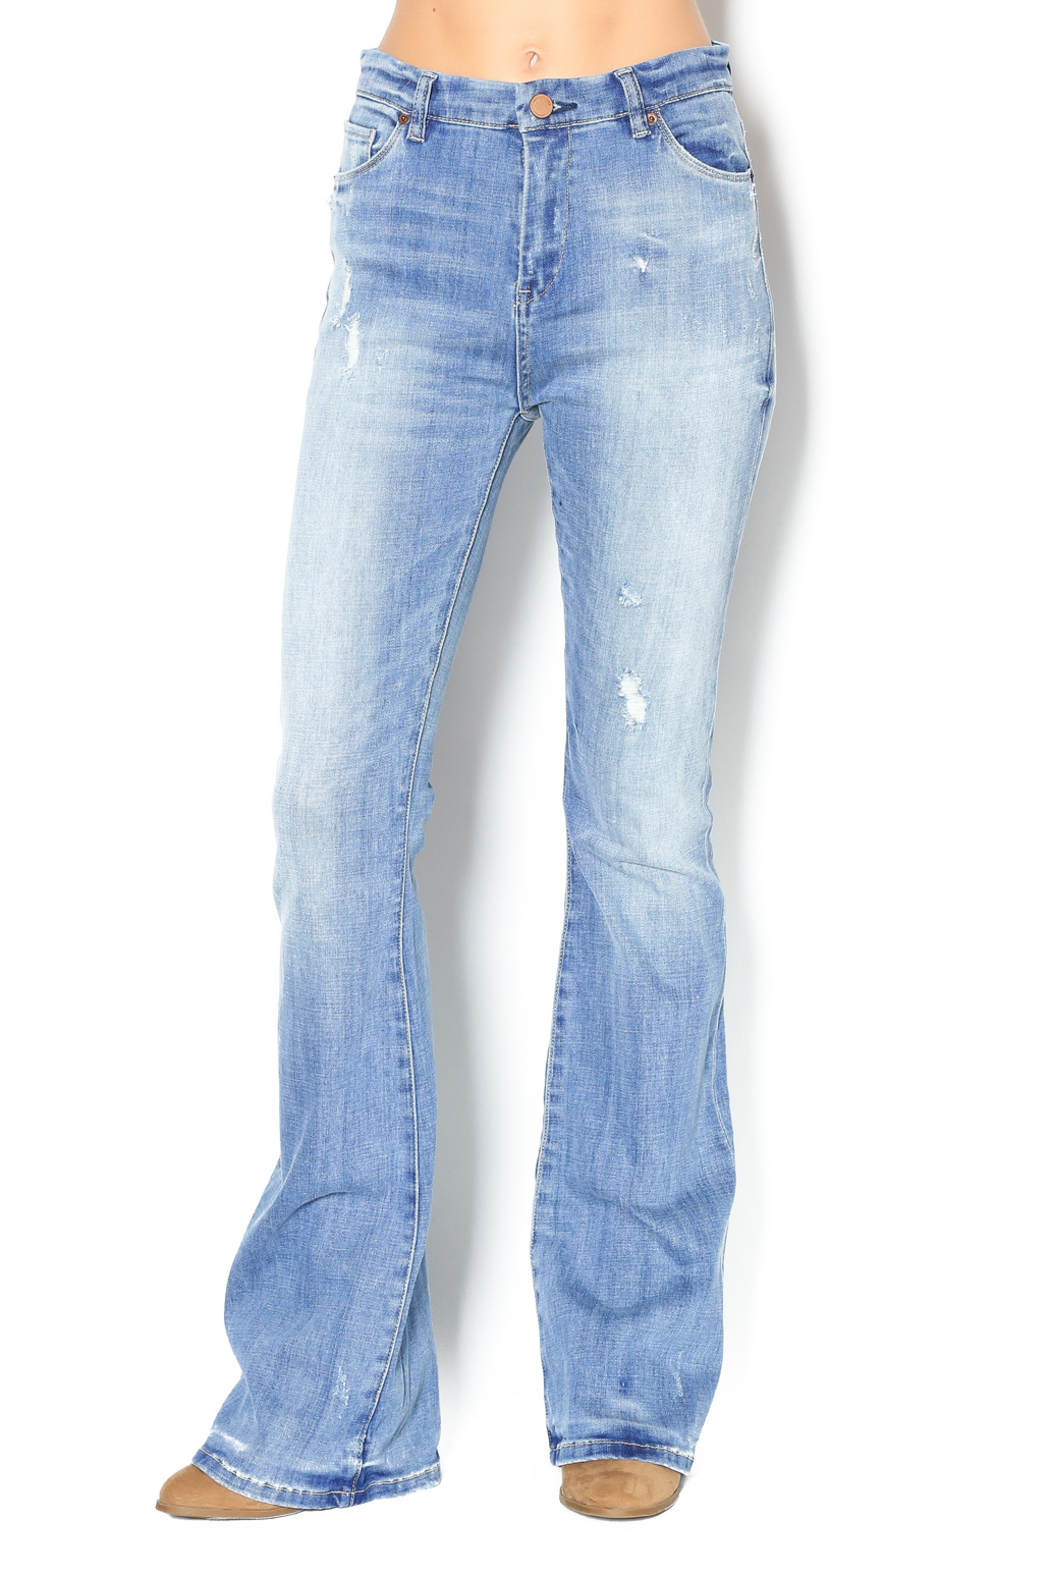 Blank NYC Kale Yeah Flare Jeans from Statesboro by Sole — Shoptiques